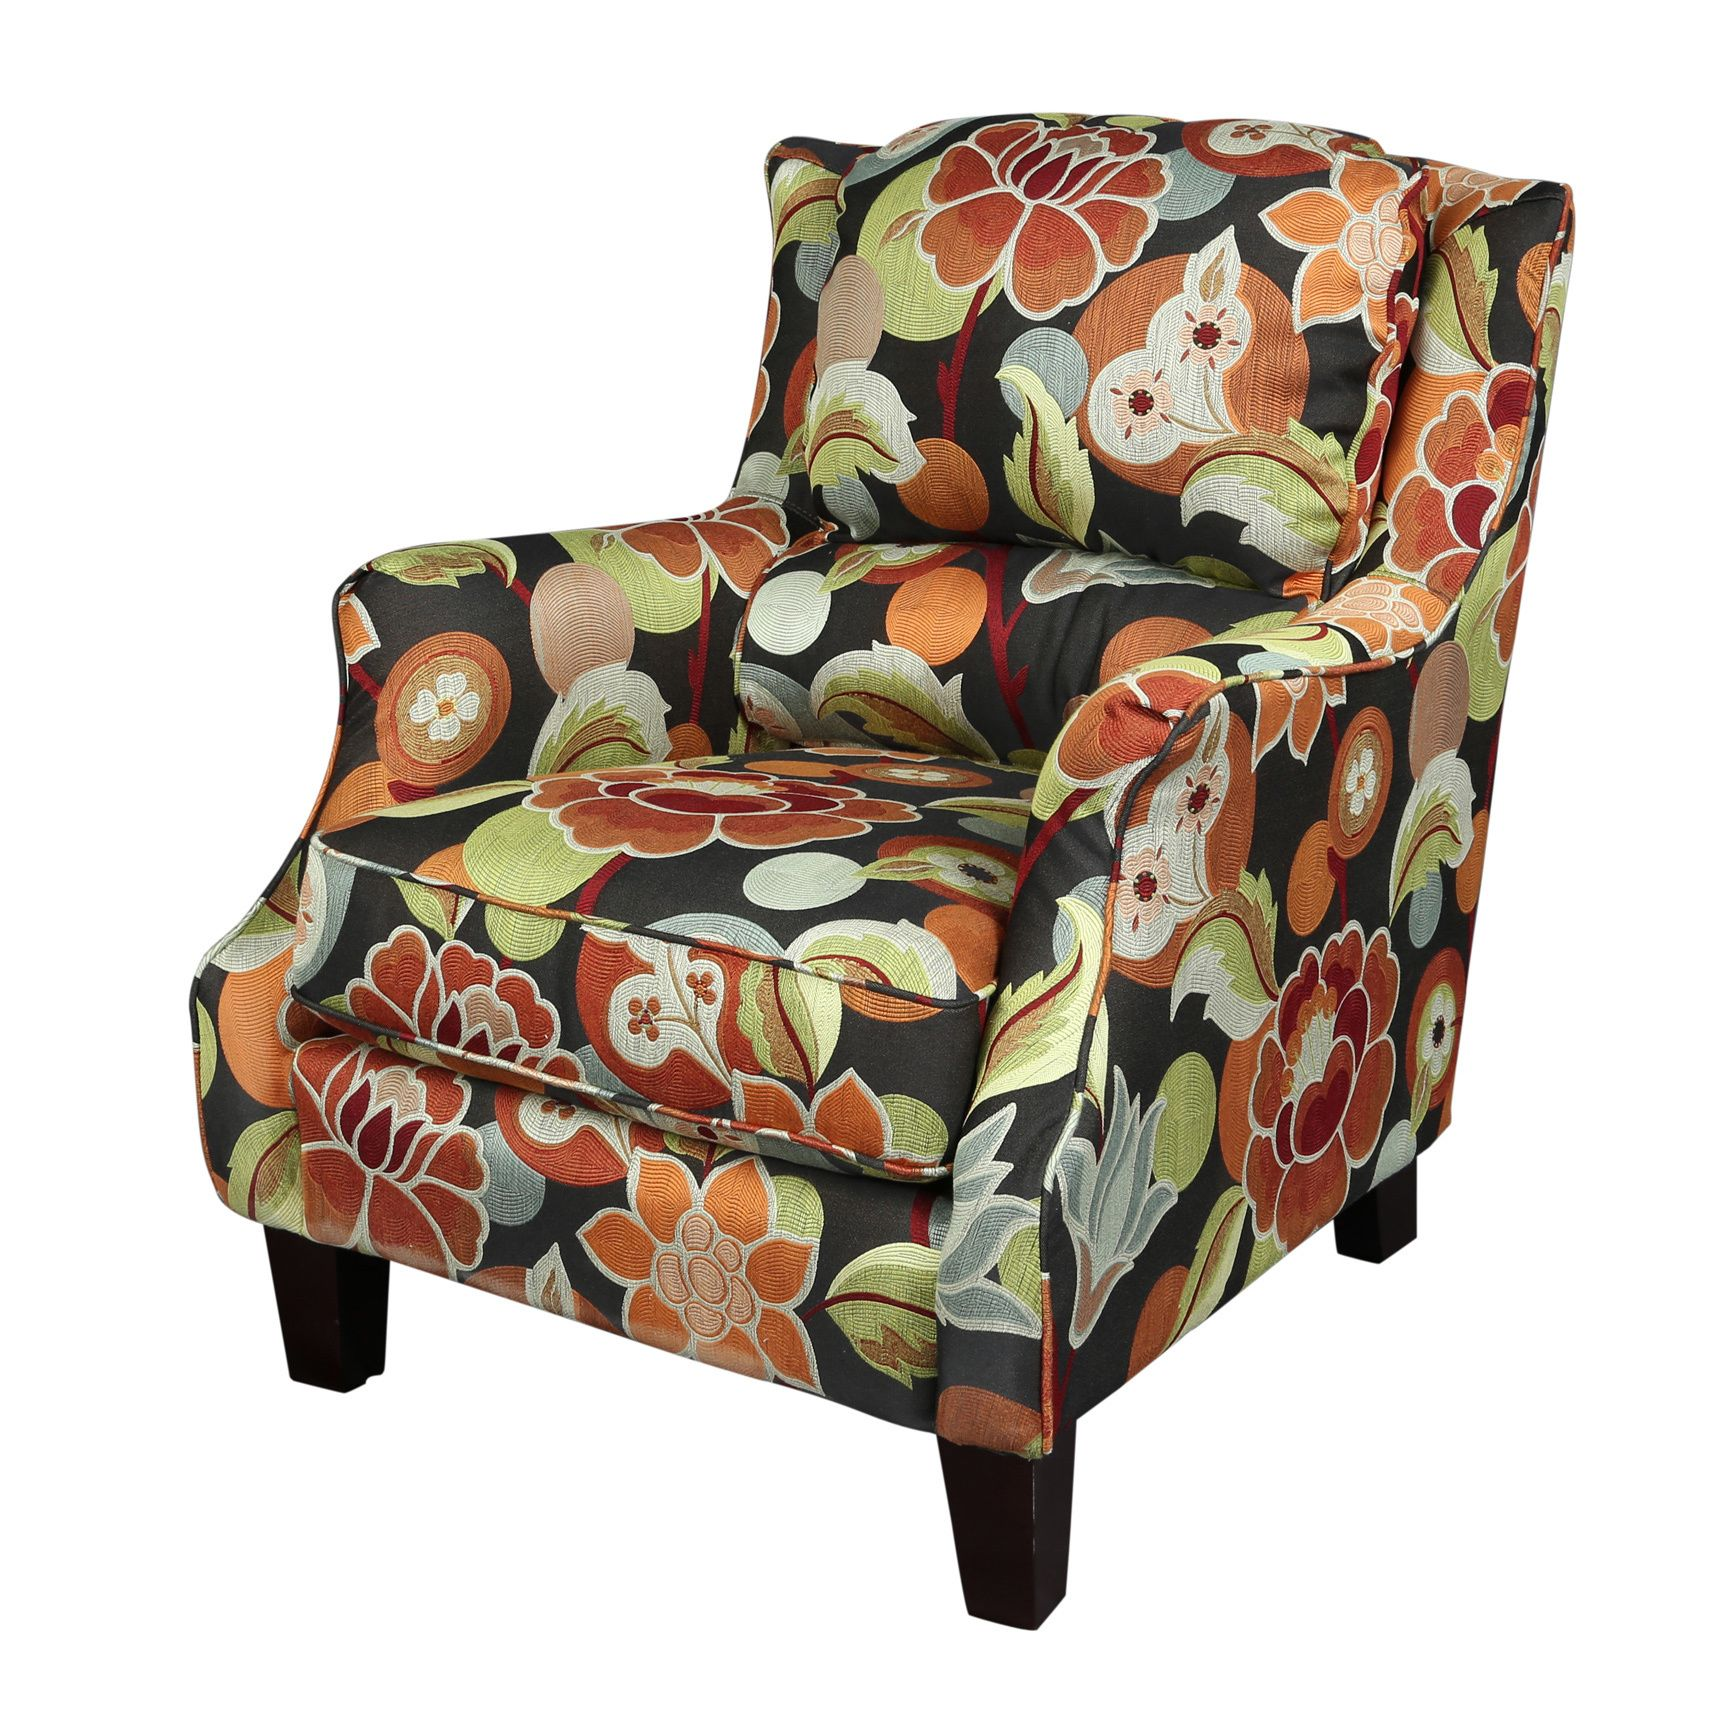 Give your home a refreshing update with this Zoe Floral Accent